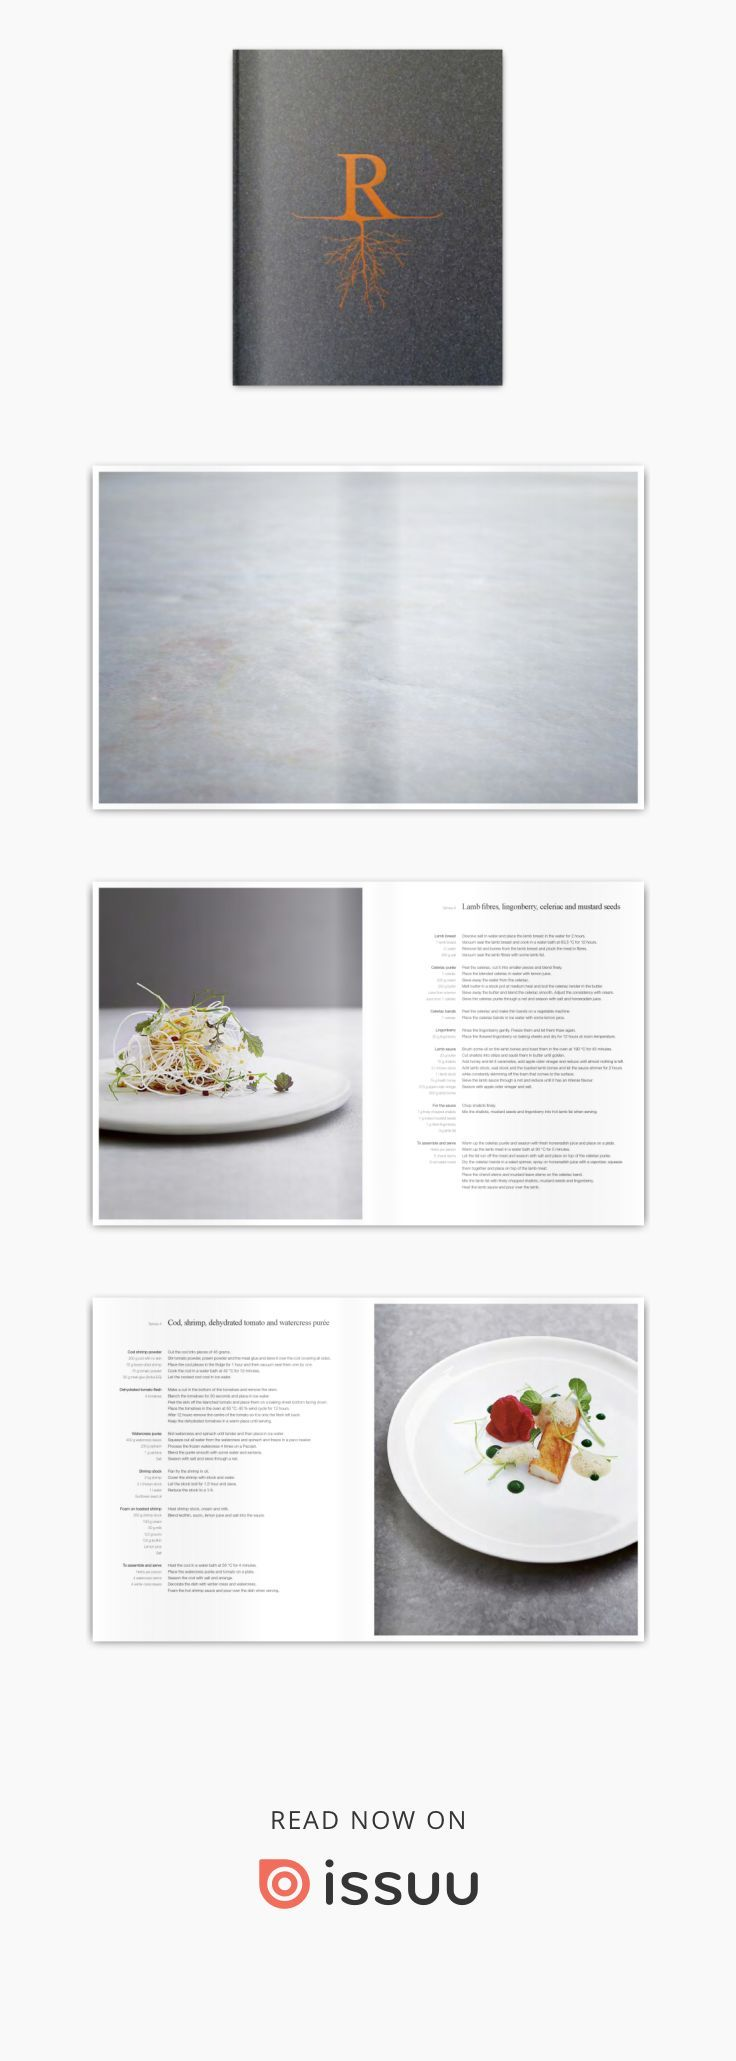 "RONNY EMBORG The Wizard's Cookbook  Chef's Cook Book for Michelin Star Chef Ronny Emborg. Won the ""Gourmand Best Chef's Cookbook International 2014"" @ Graphic Design by Bonnelycke mdd 2013."